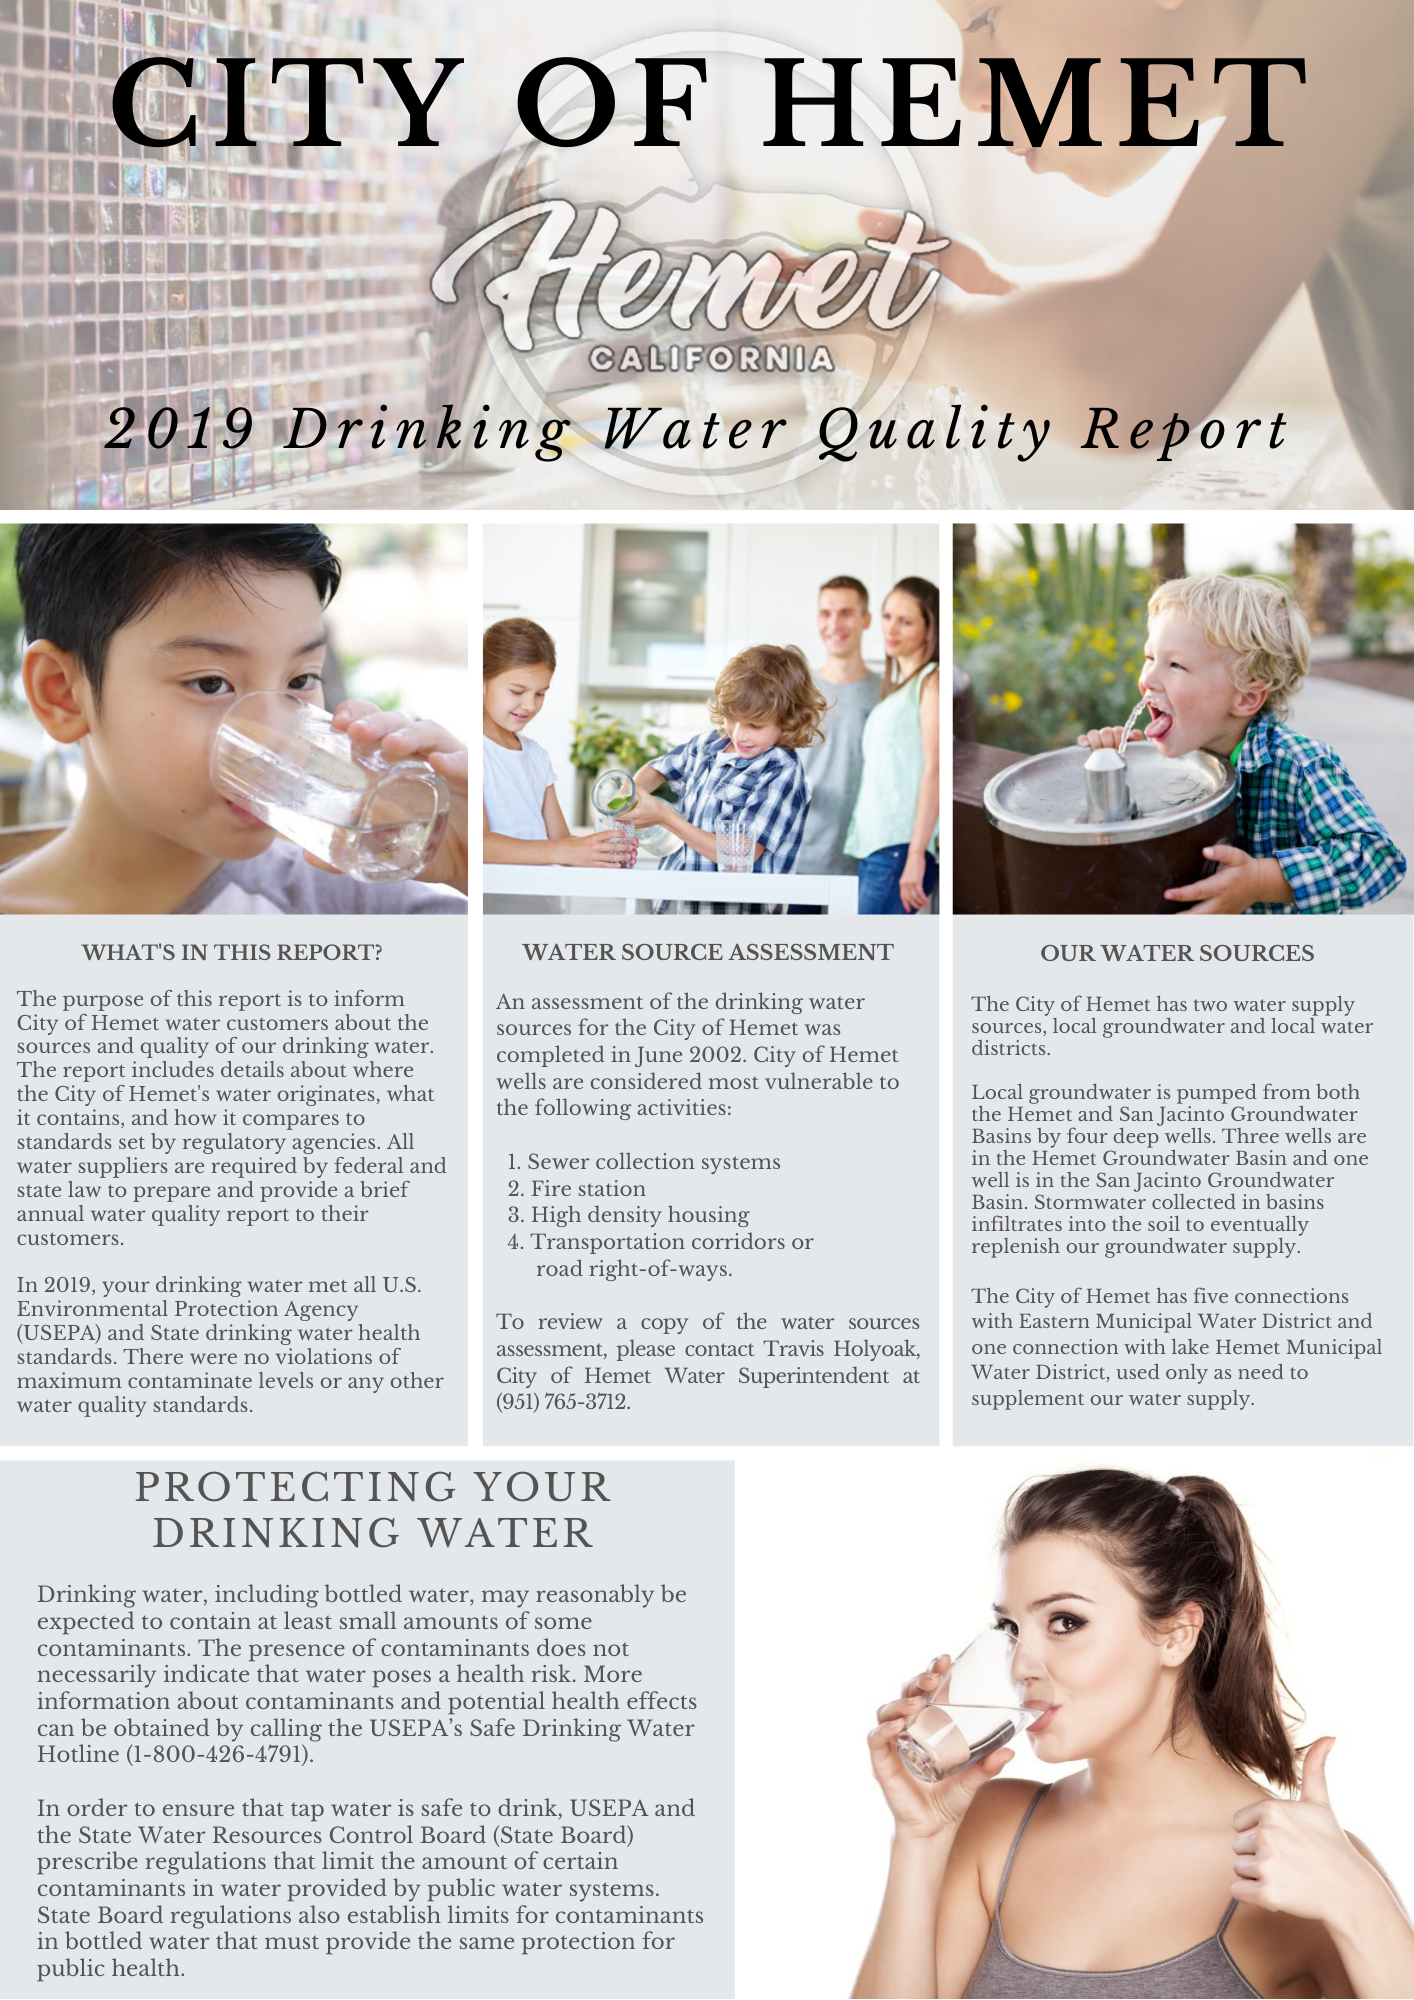 2019 CCR REPORT FRONT PAGE